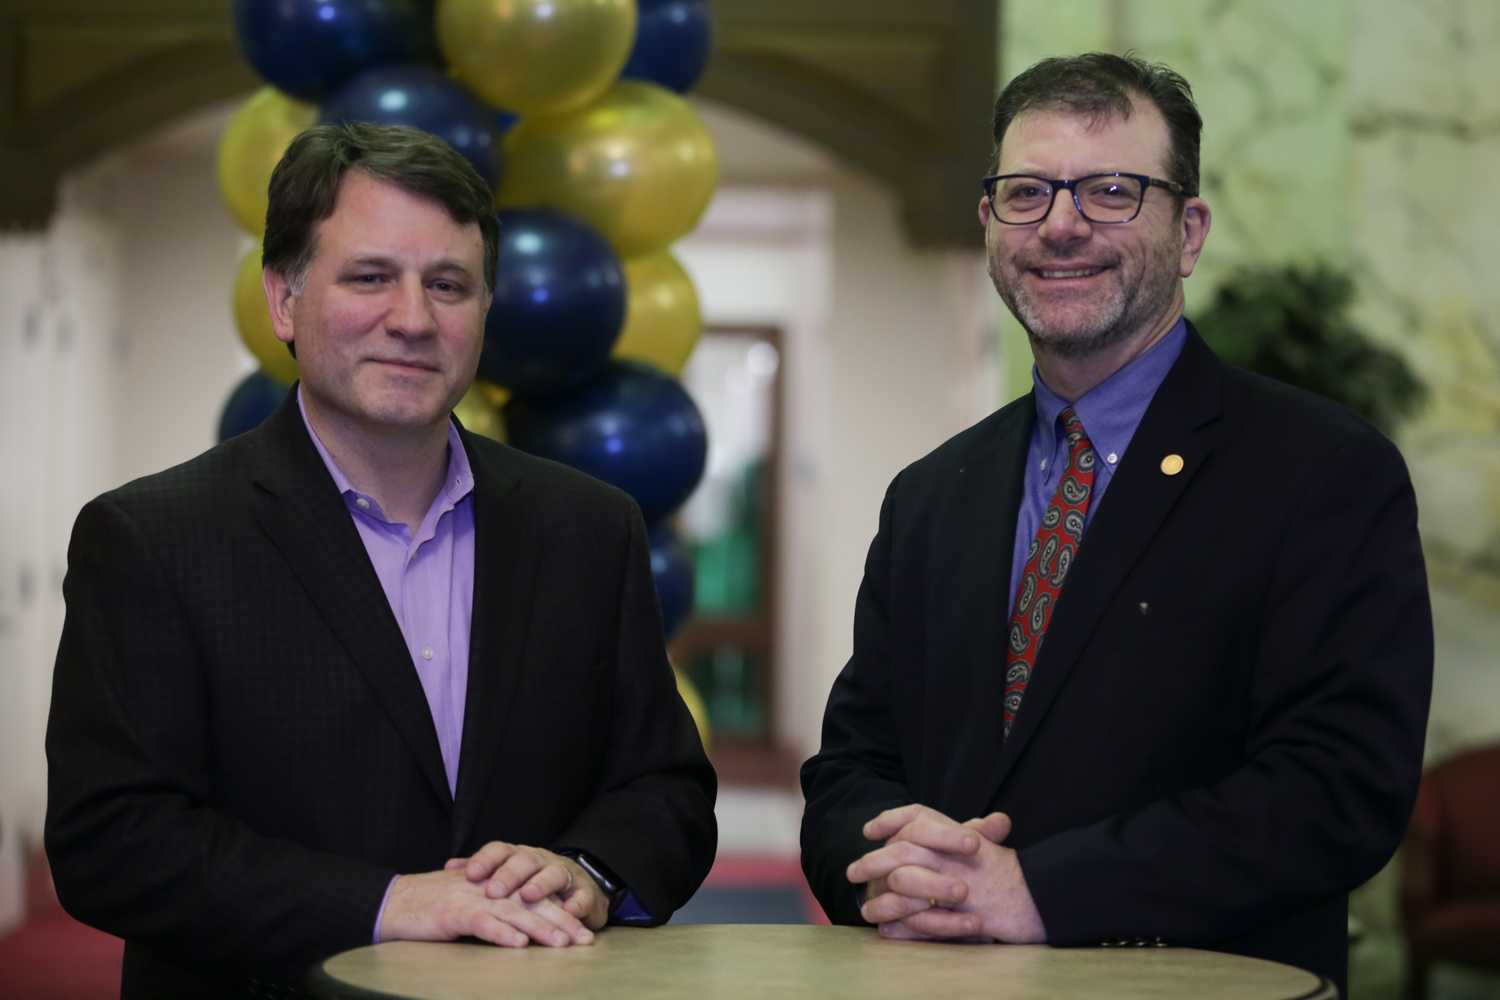 Randy Eager (left), managing director of the Pittsburgh Founder Institute chapter, and Greg Coticchia (right), director for Carnegie Mellon University's Master of Science in Product Management, originally pitched the idea for the Pittsburgh Founder Institute chapter in September 2017. (Photo by Anas Dighriri | Staff Photographer)